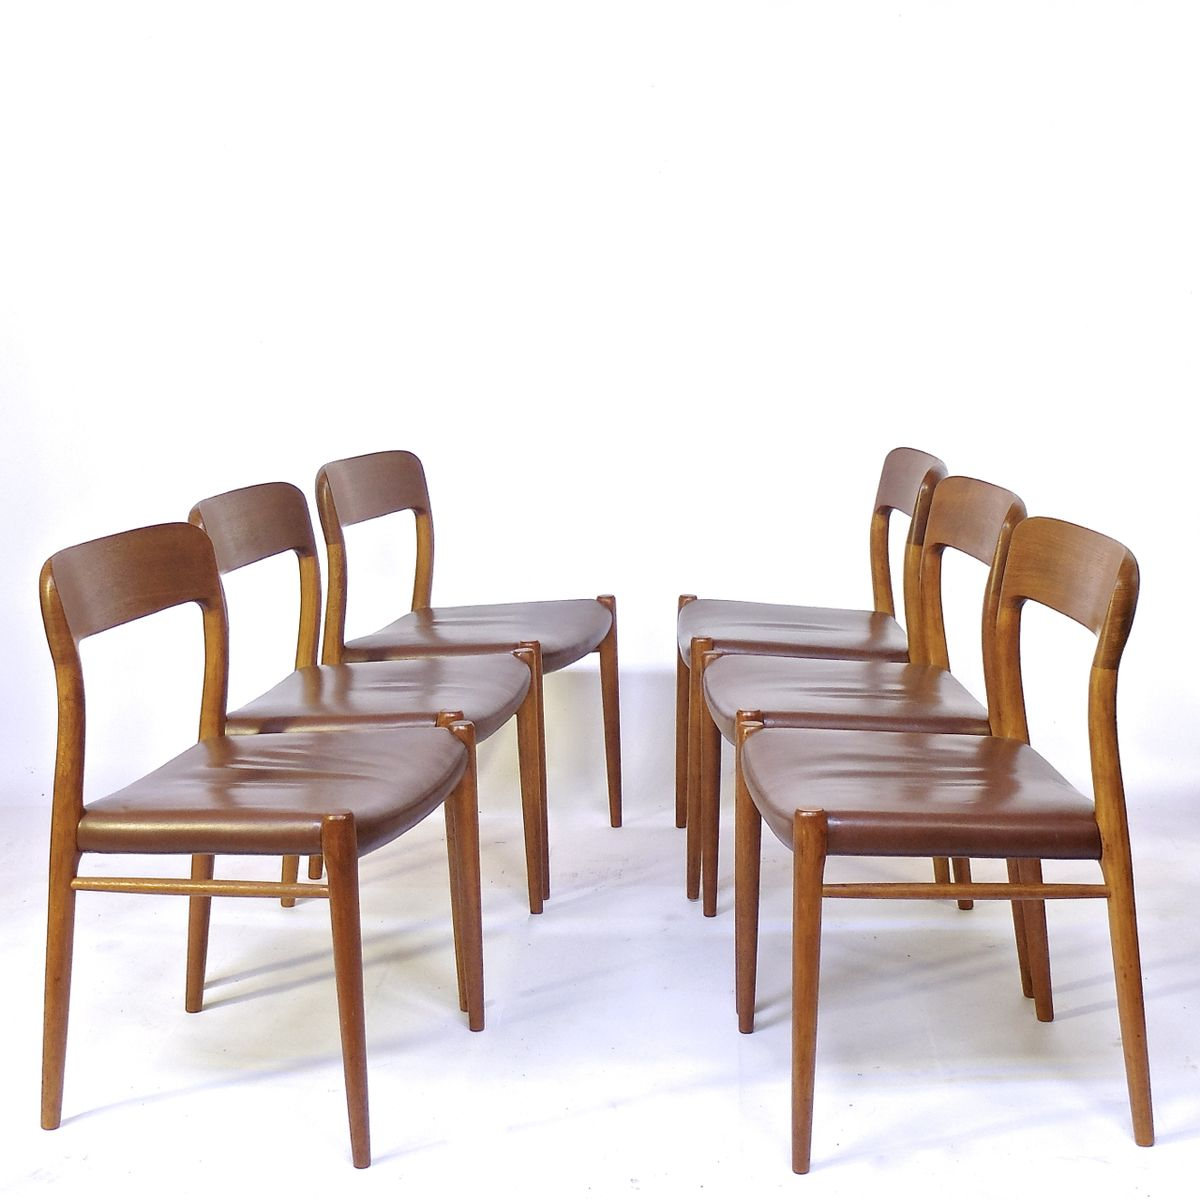 vintage st hle aus teak leder von niels o m ller f r j l m llers 6er set bei pamono kaufen. Black Bedroom Furniture Sets. Home Design Ideas